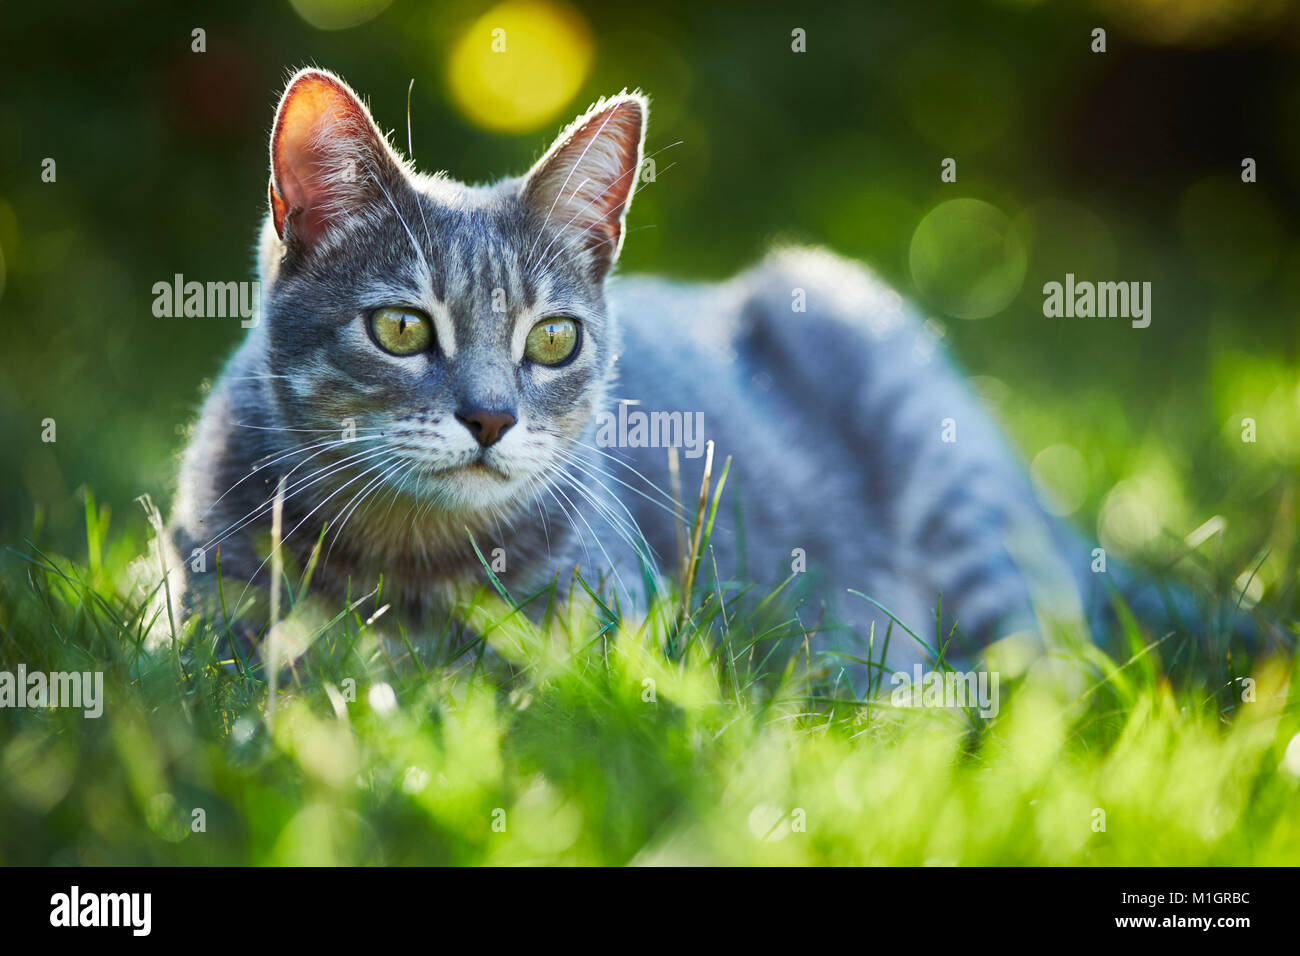 Domestic cat. Gray tabby adult lying in grass. Germany. - Stock Image